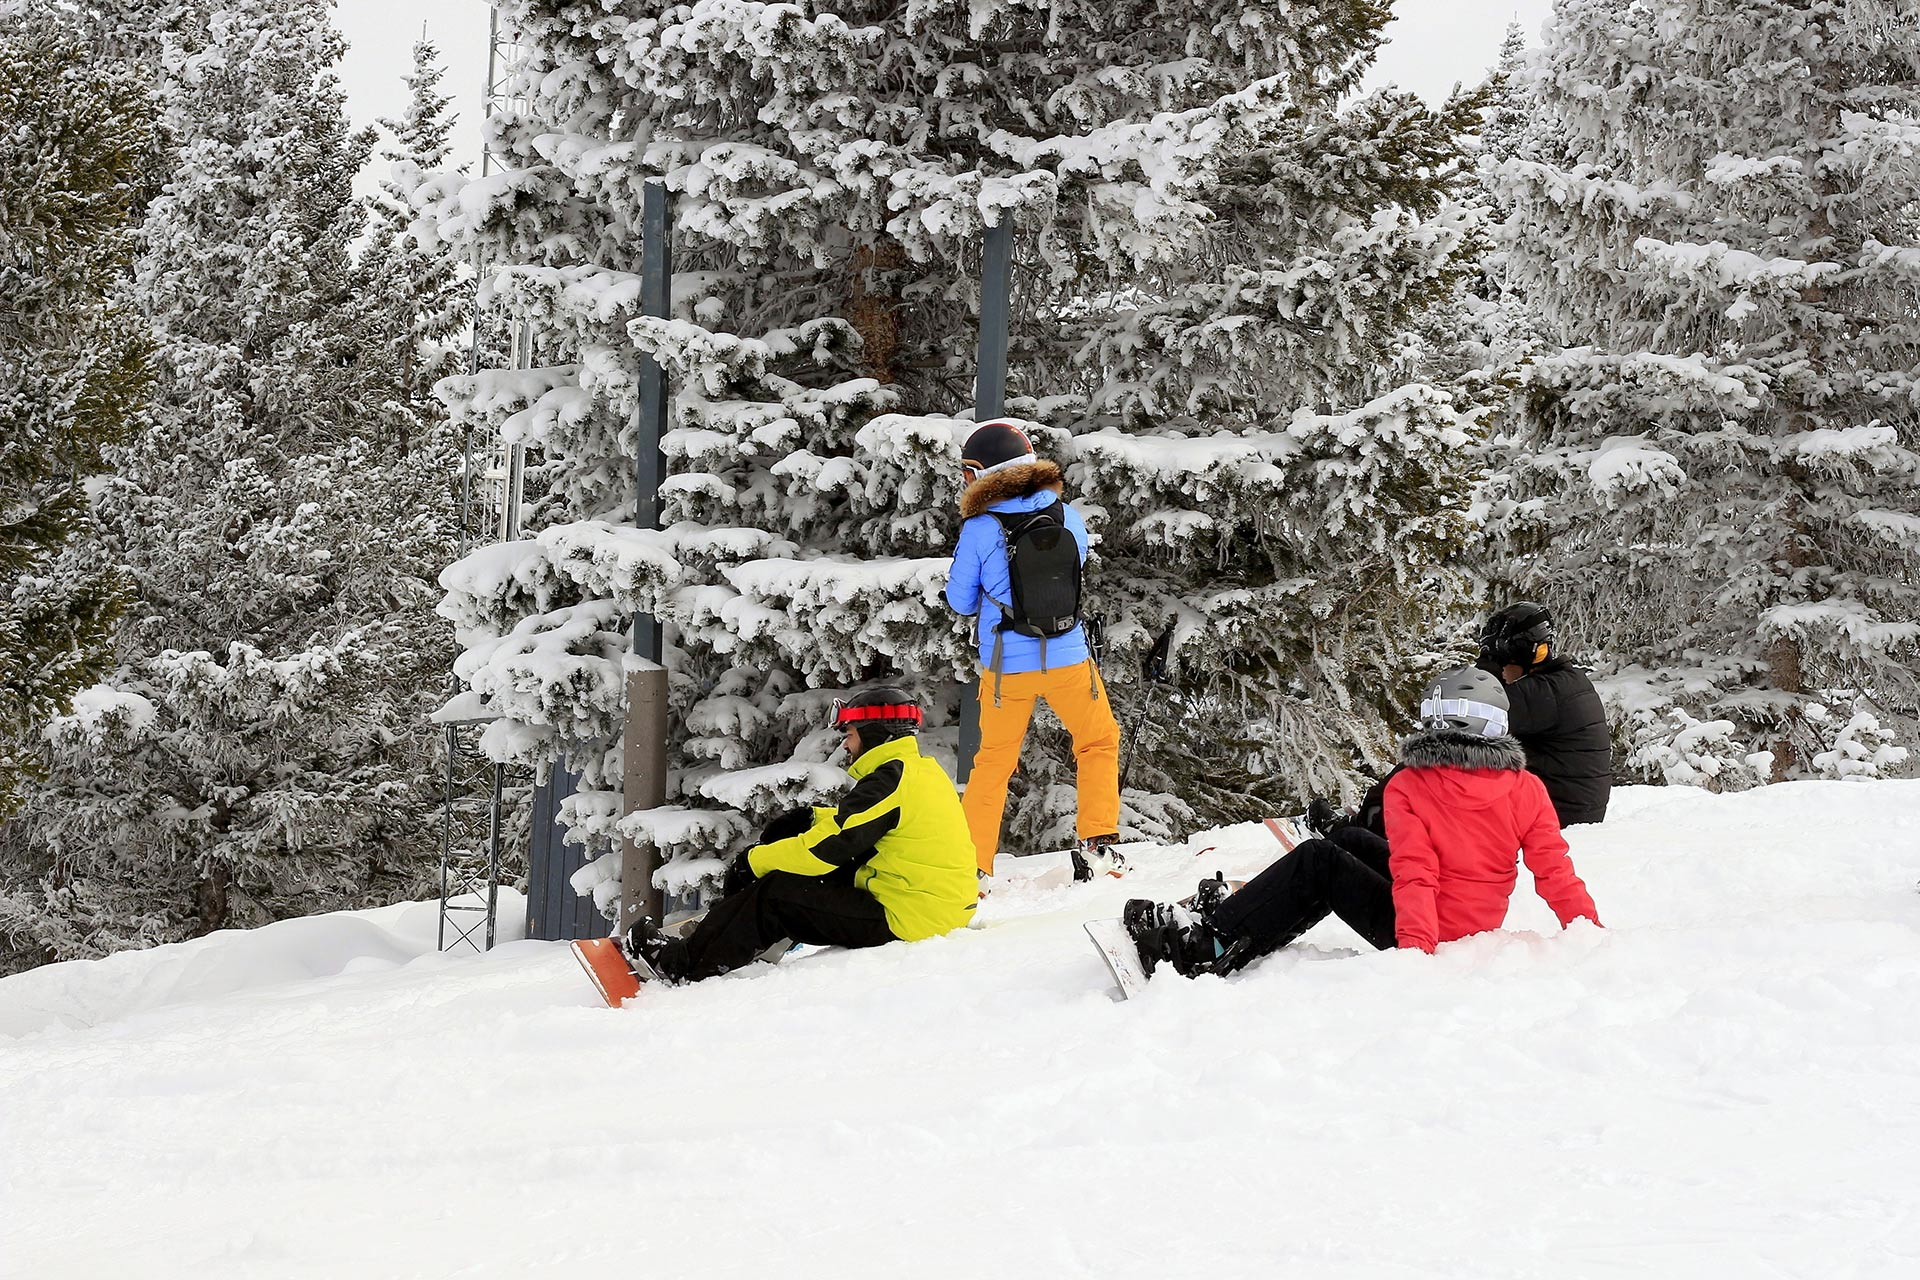 A group of teens taking a break on the mountain at Snowmass in Colorado.